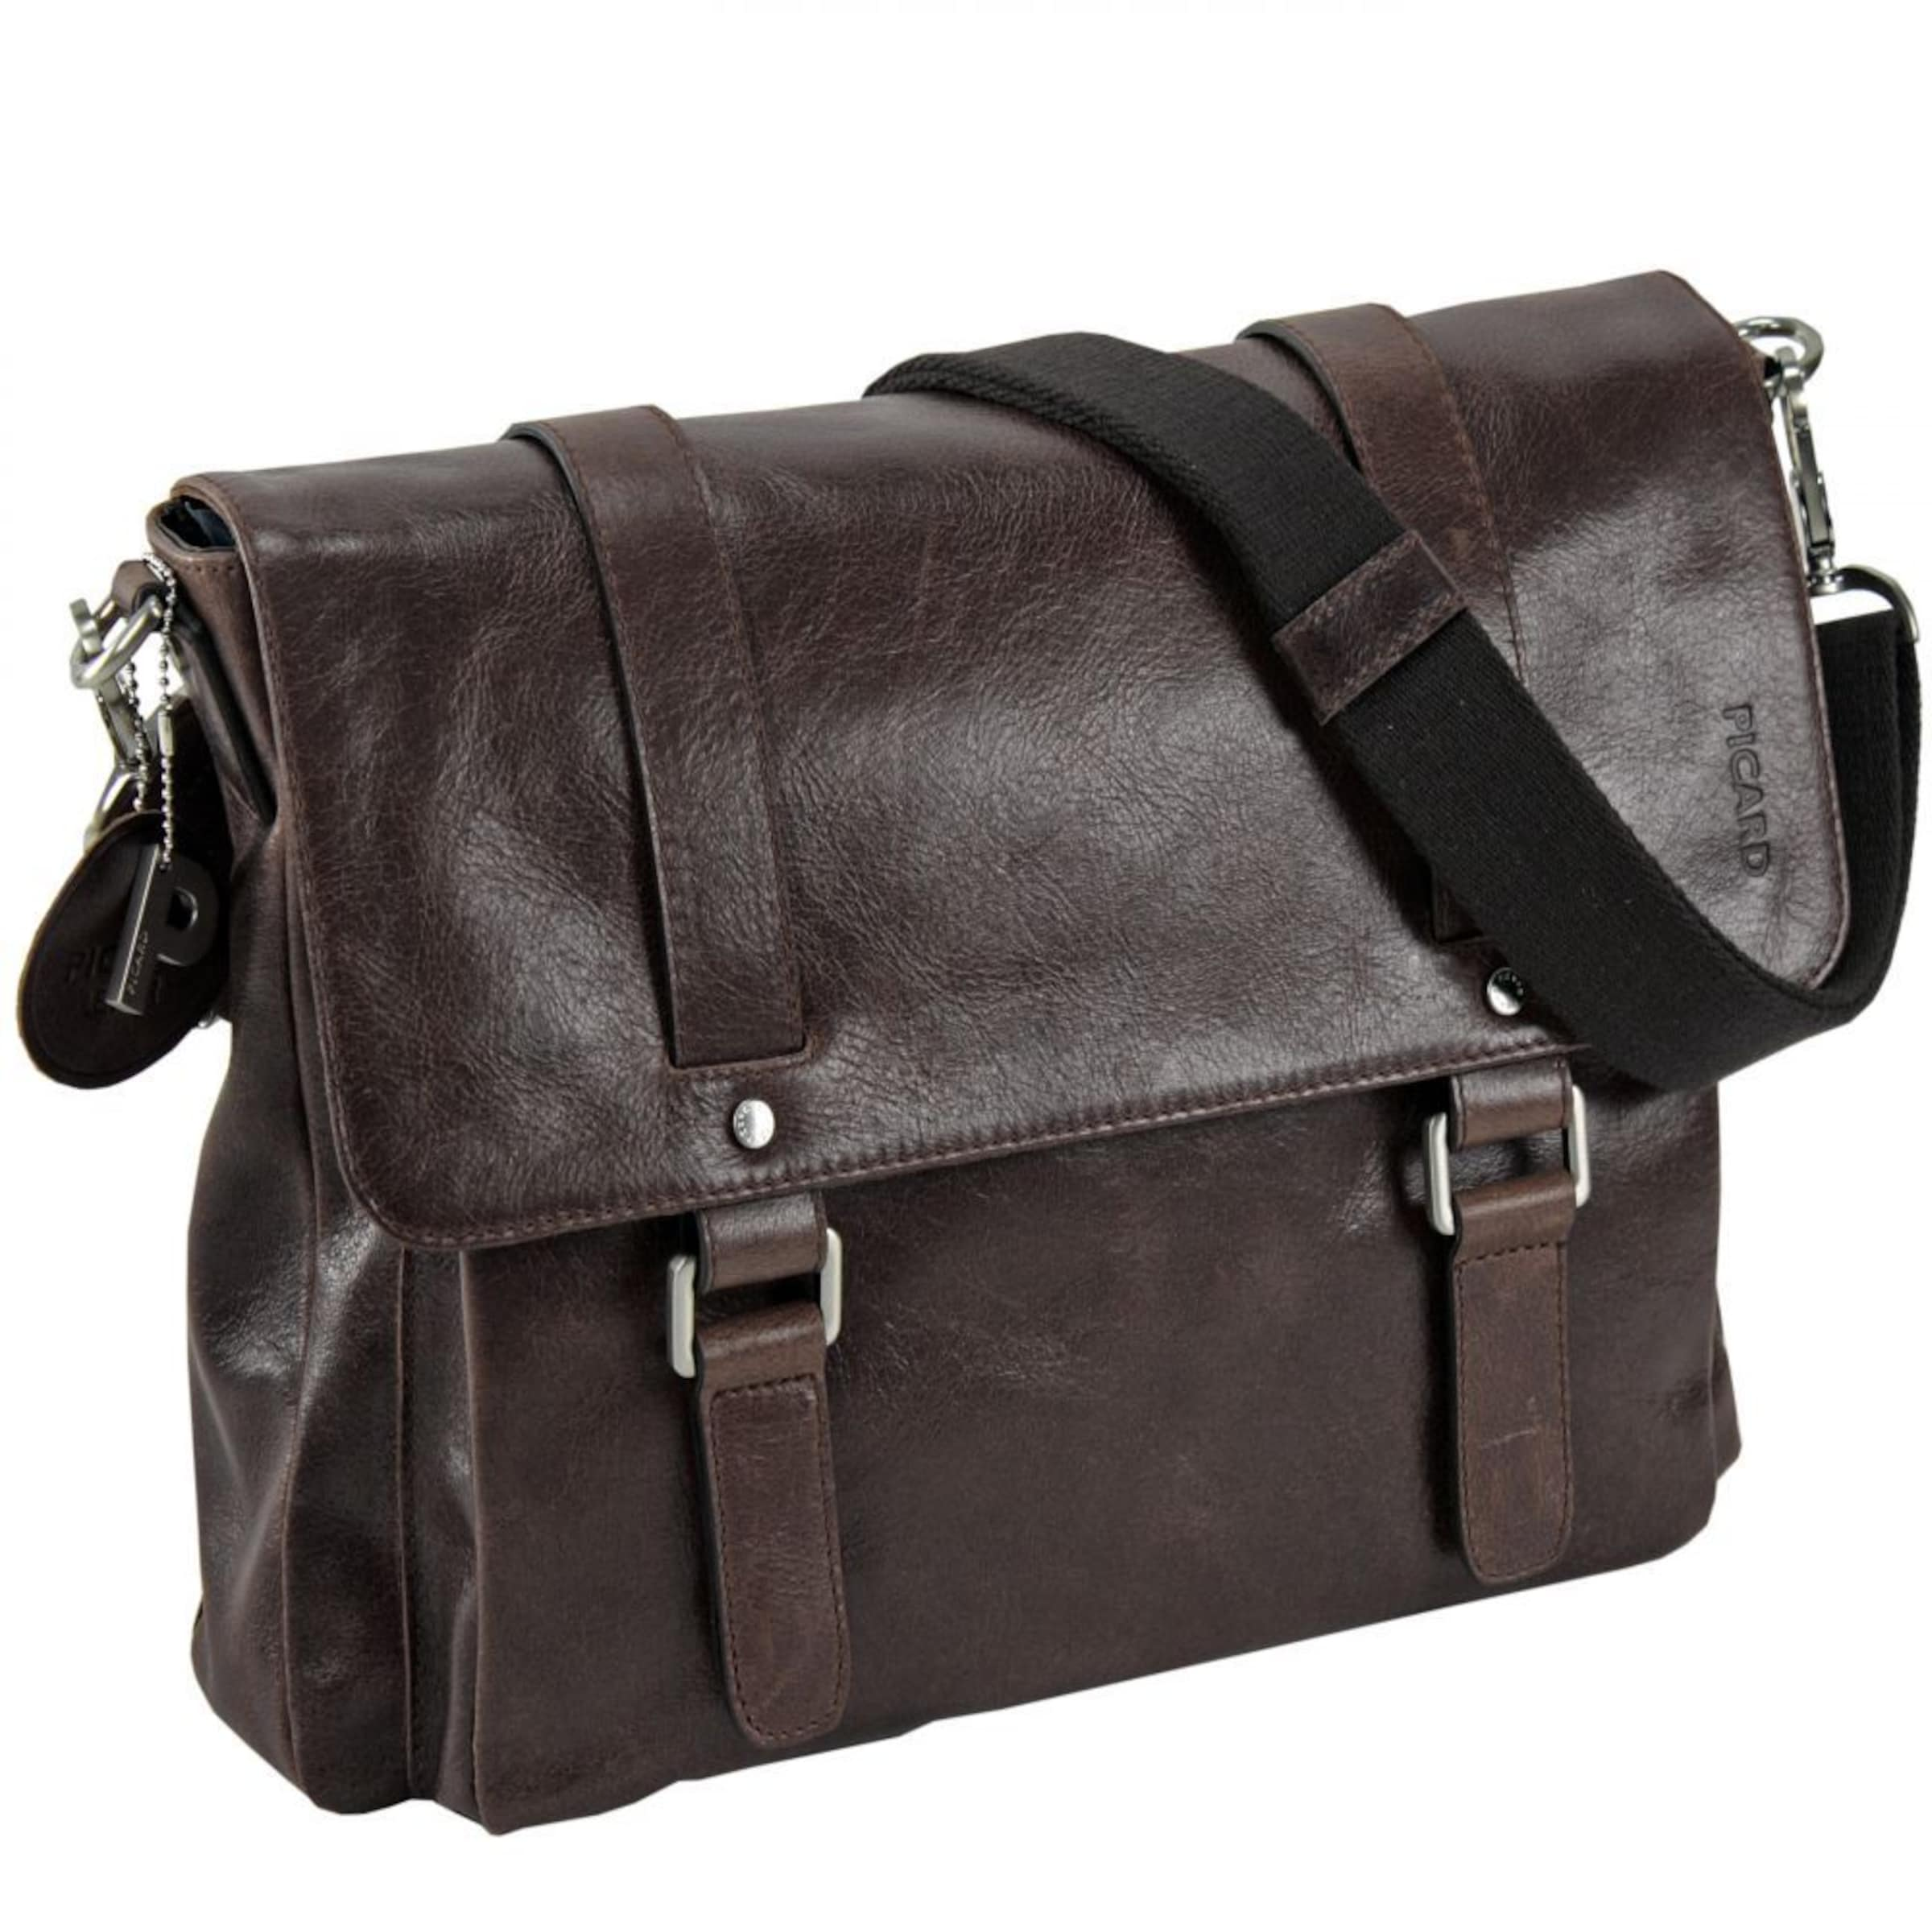 Cm 37 Business Braun tasche In Leder Picard Buddy 4R35ALqj